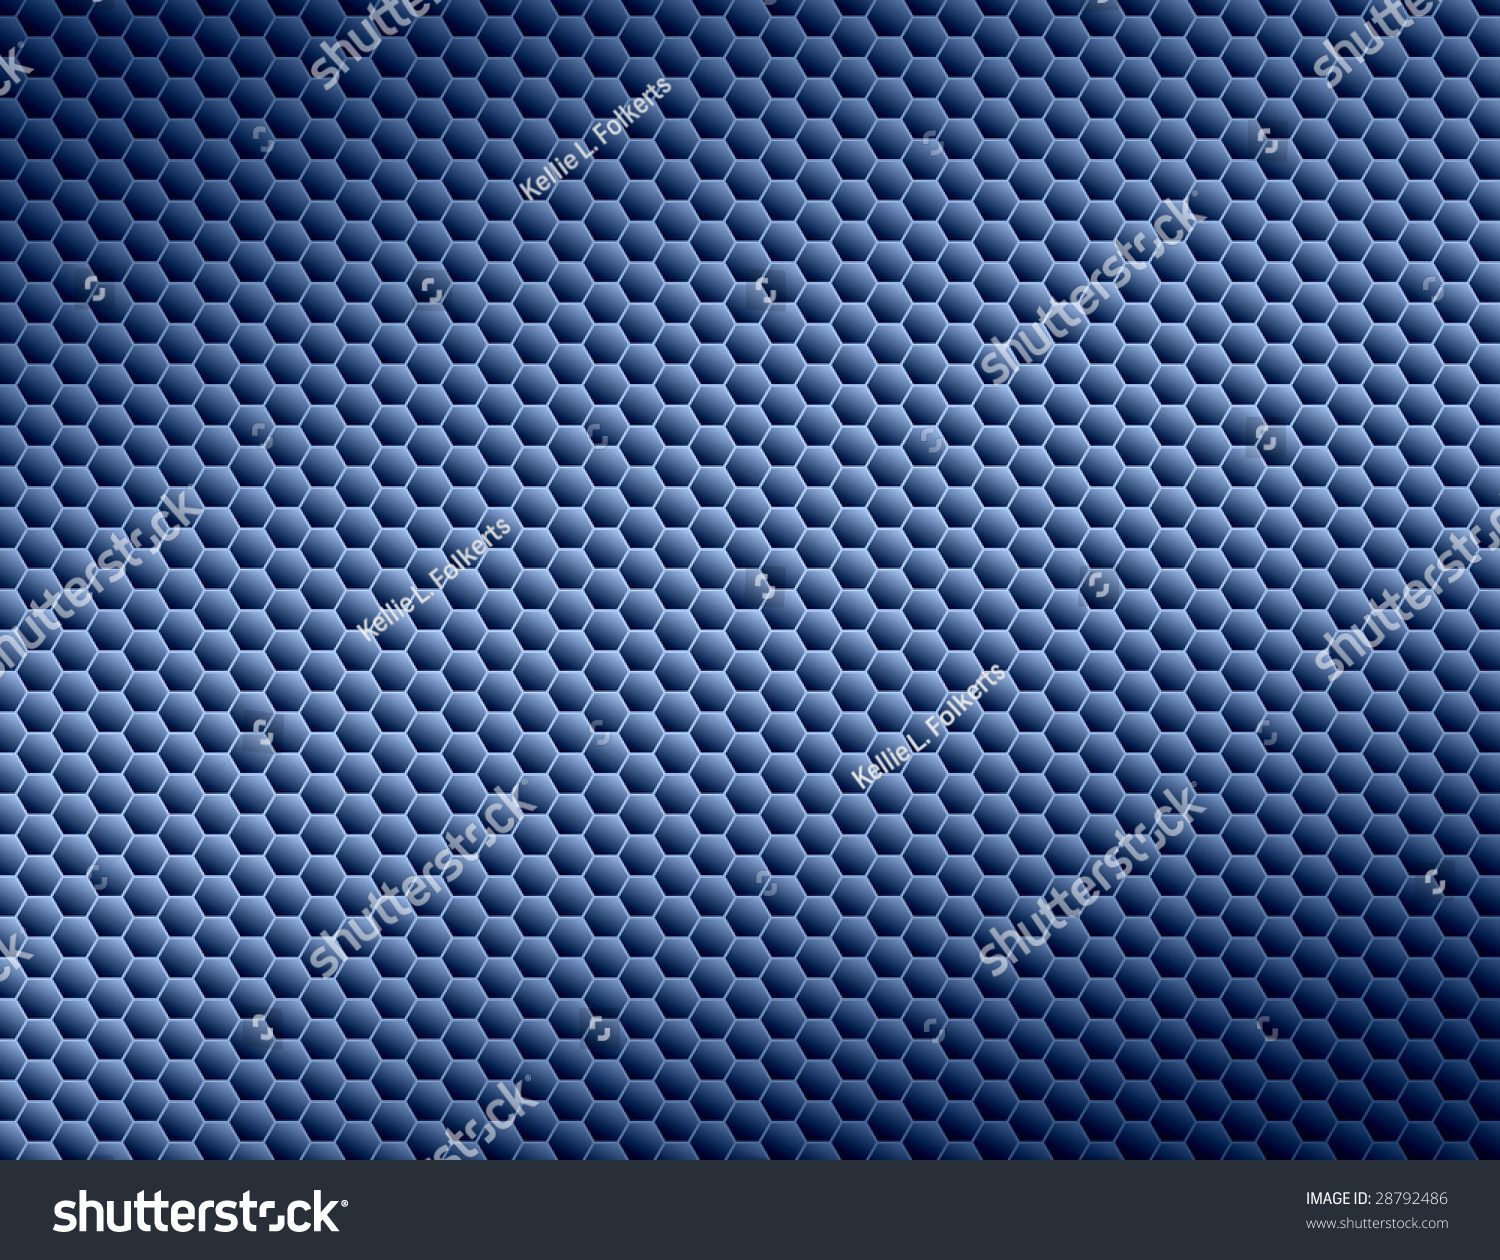 Blue Honeycomb Abstract Background Stock Photo 28792486